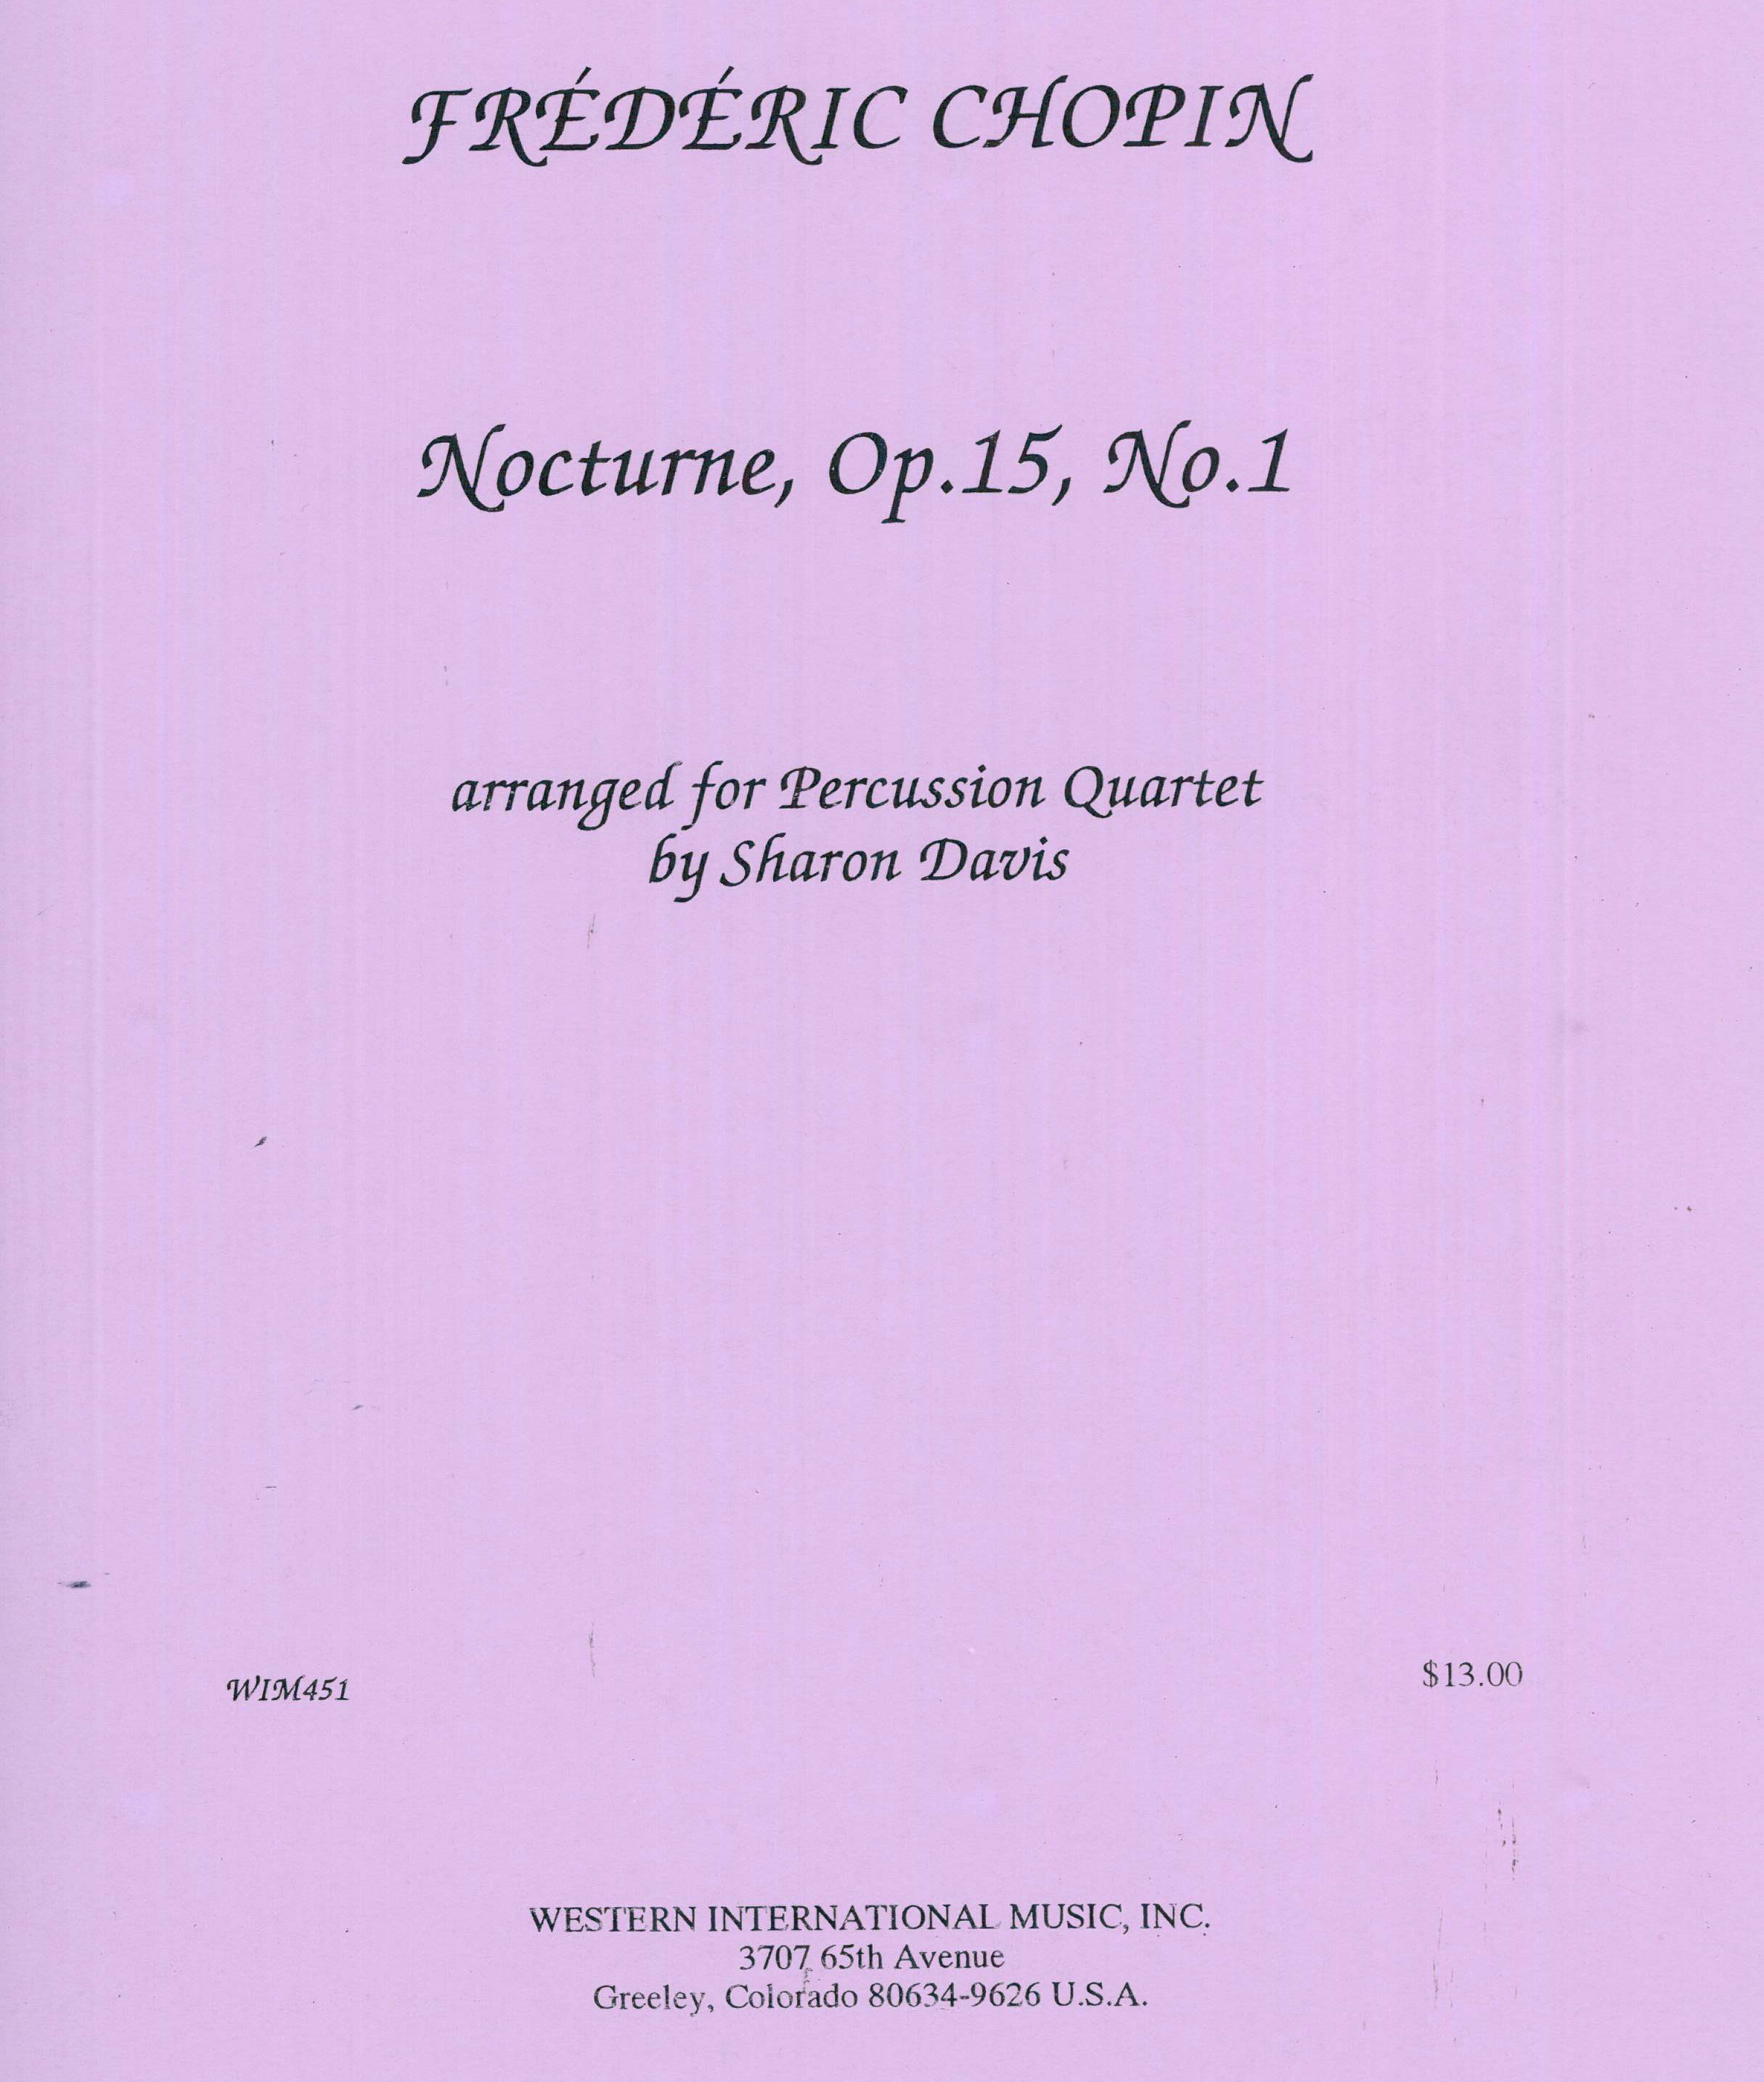 Nocturne, Op. 15, No. 1 by Frederic Chopin arr. Sharon Davis